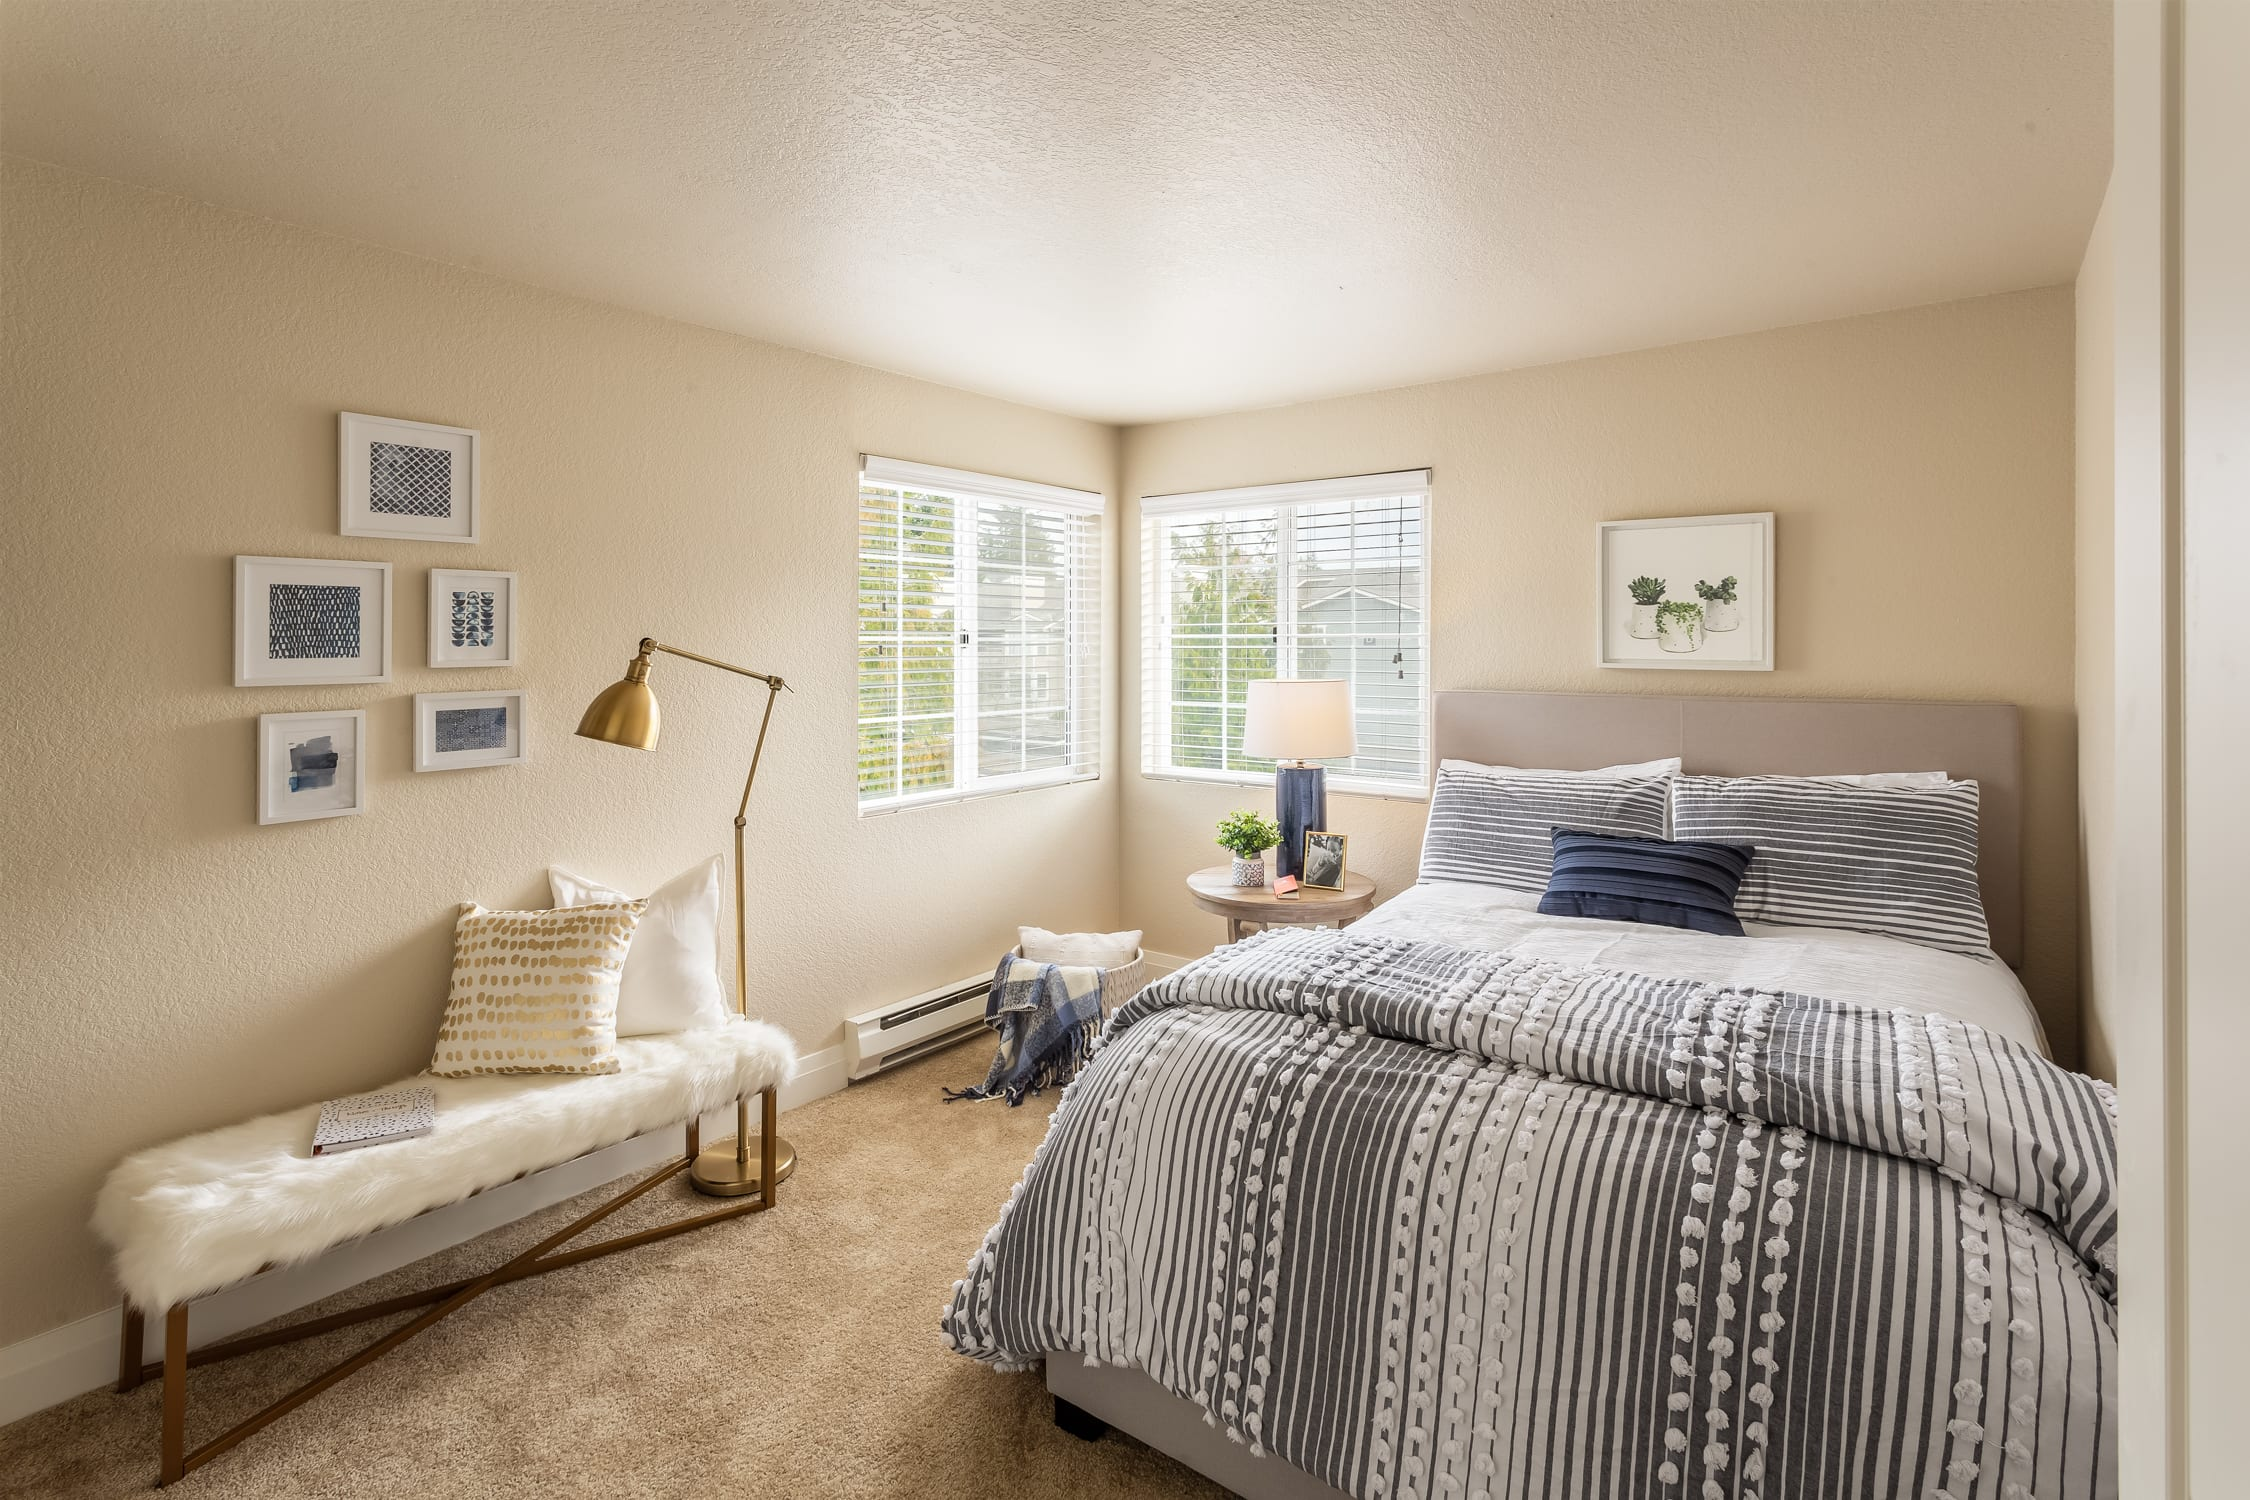 A bed, a small table, and a bench staged to show off a Haller Post Apartment bedroom